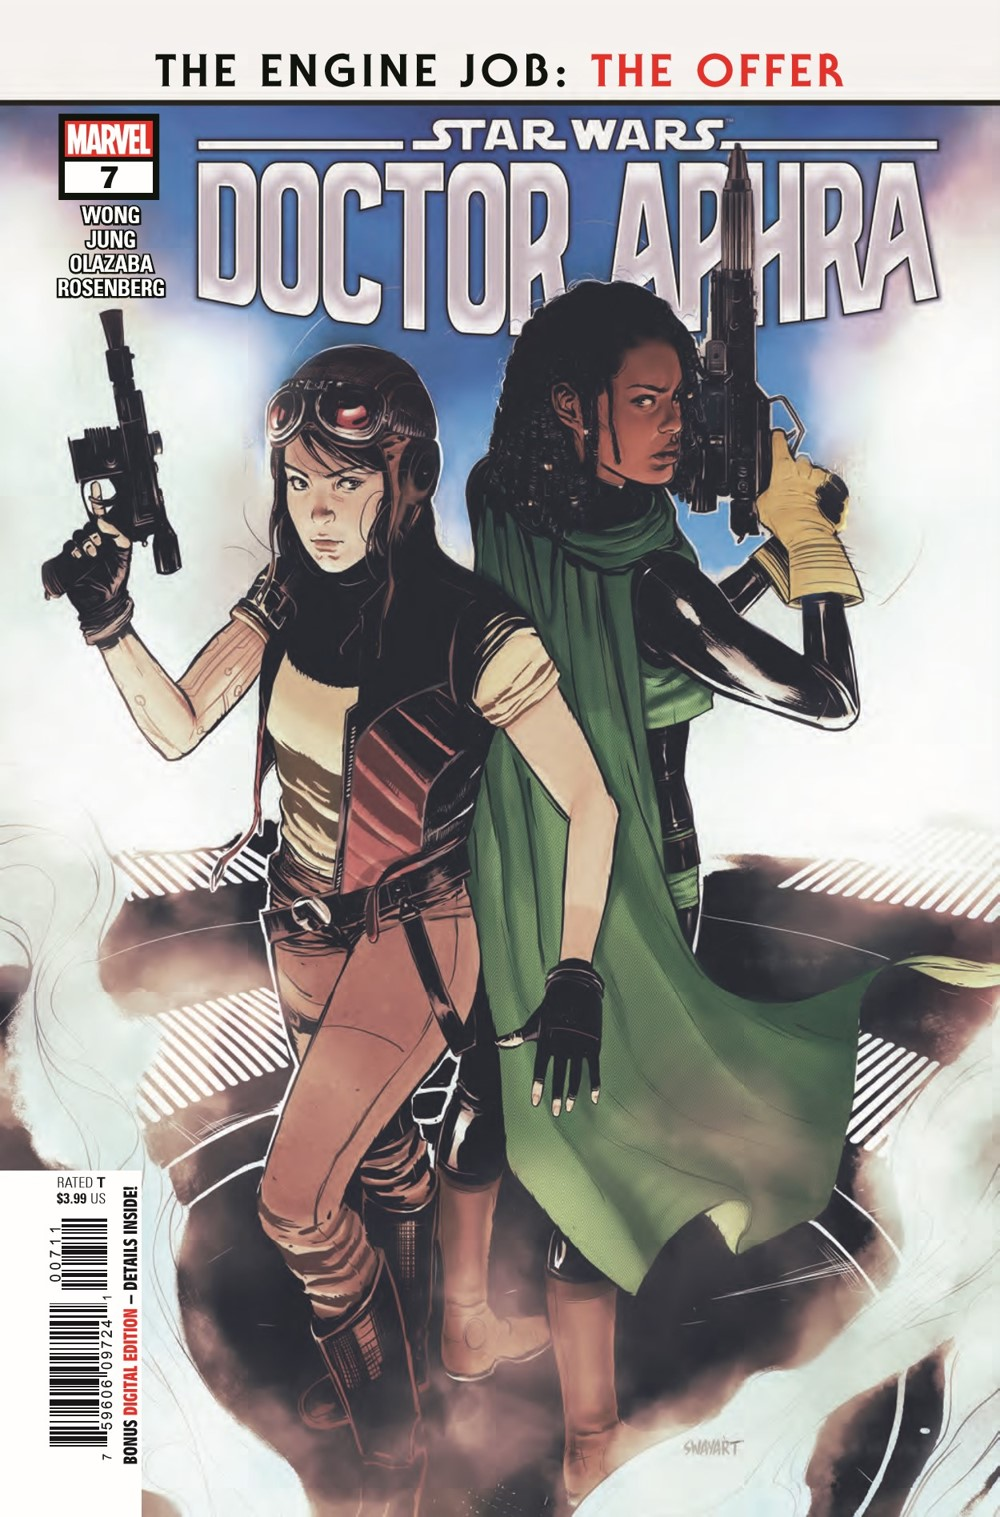 STWAPHRA2020007_Preview-1 ComicList Previews: STAR WARS DOCTOR APHRA #7